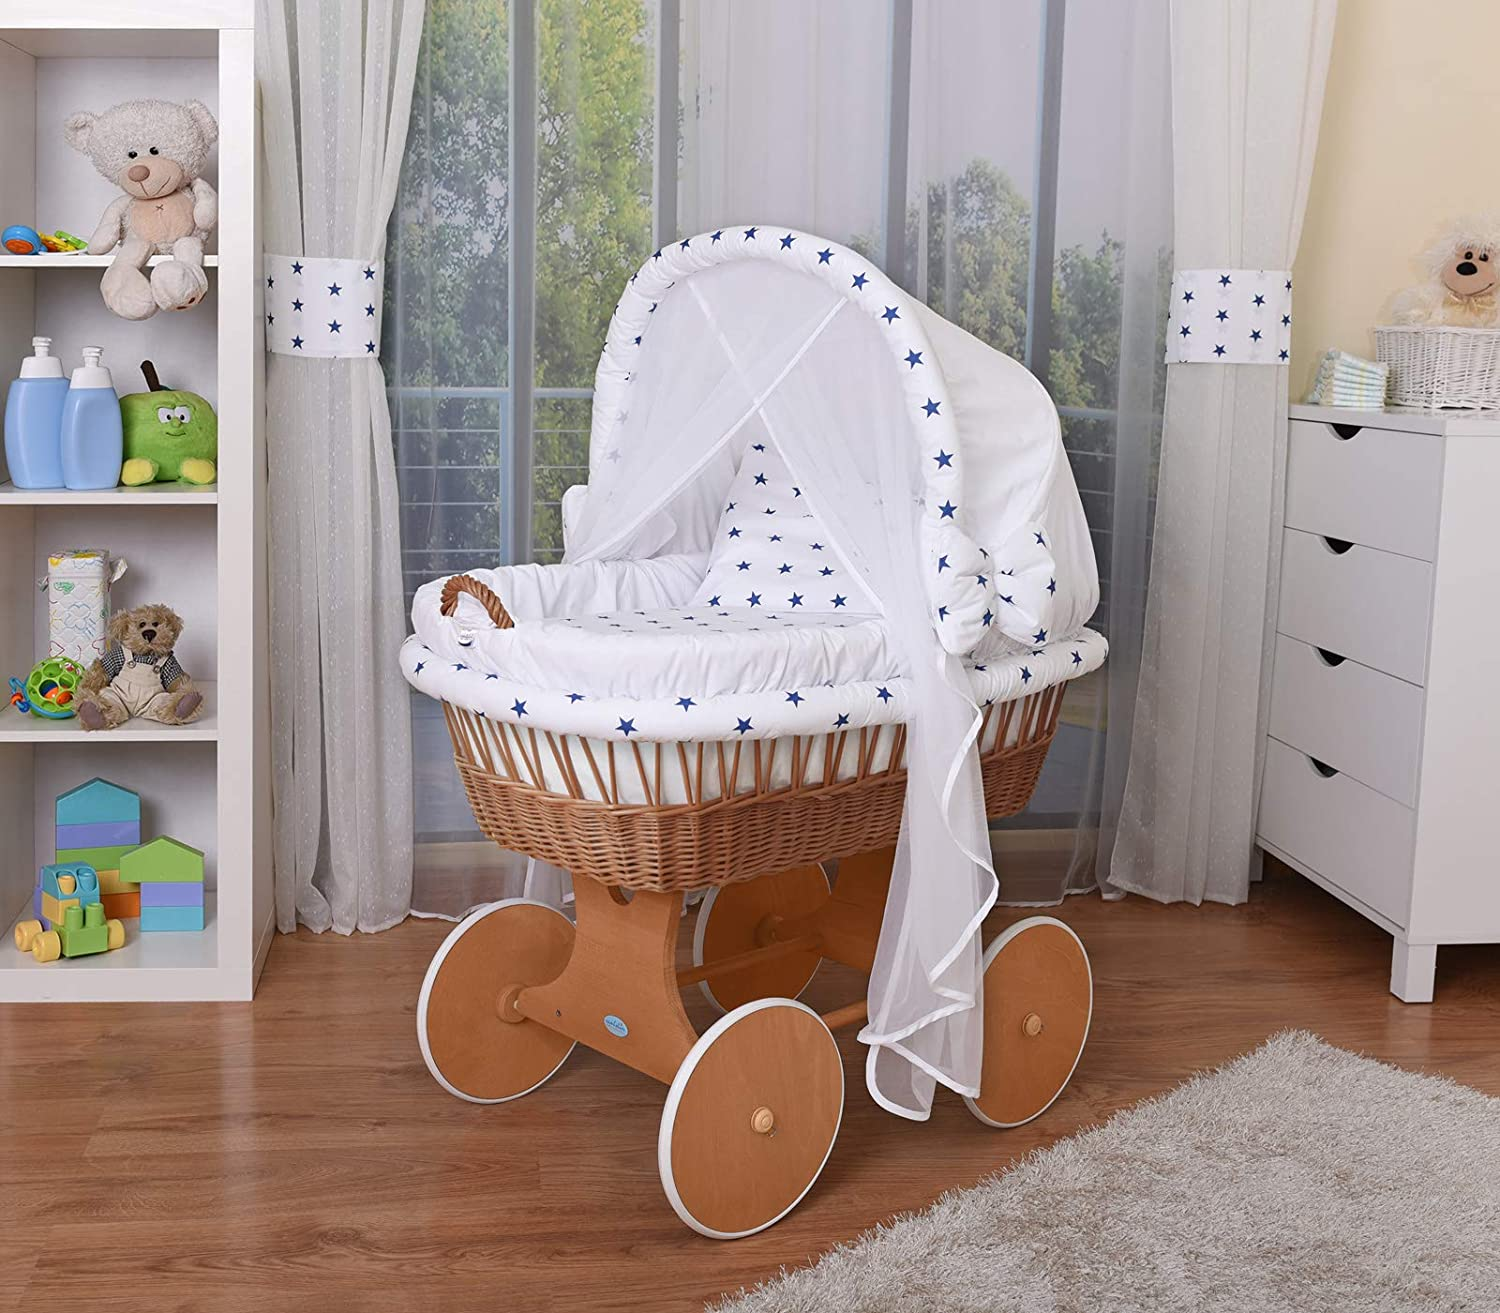 WALDIN Baby Wicker Cradle, Moses Basket, 44 Models Available, Grey Painted Stand/Wheels, Textile Colour White